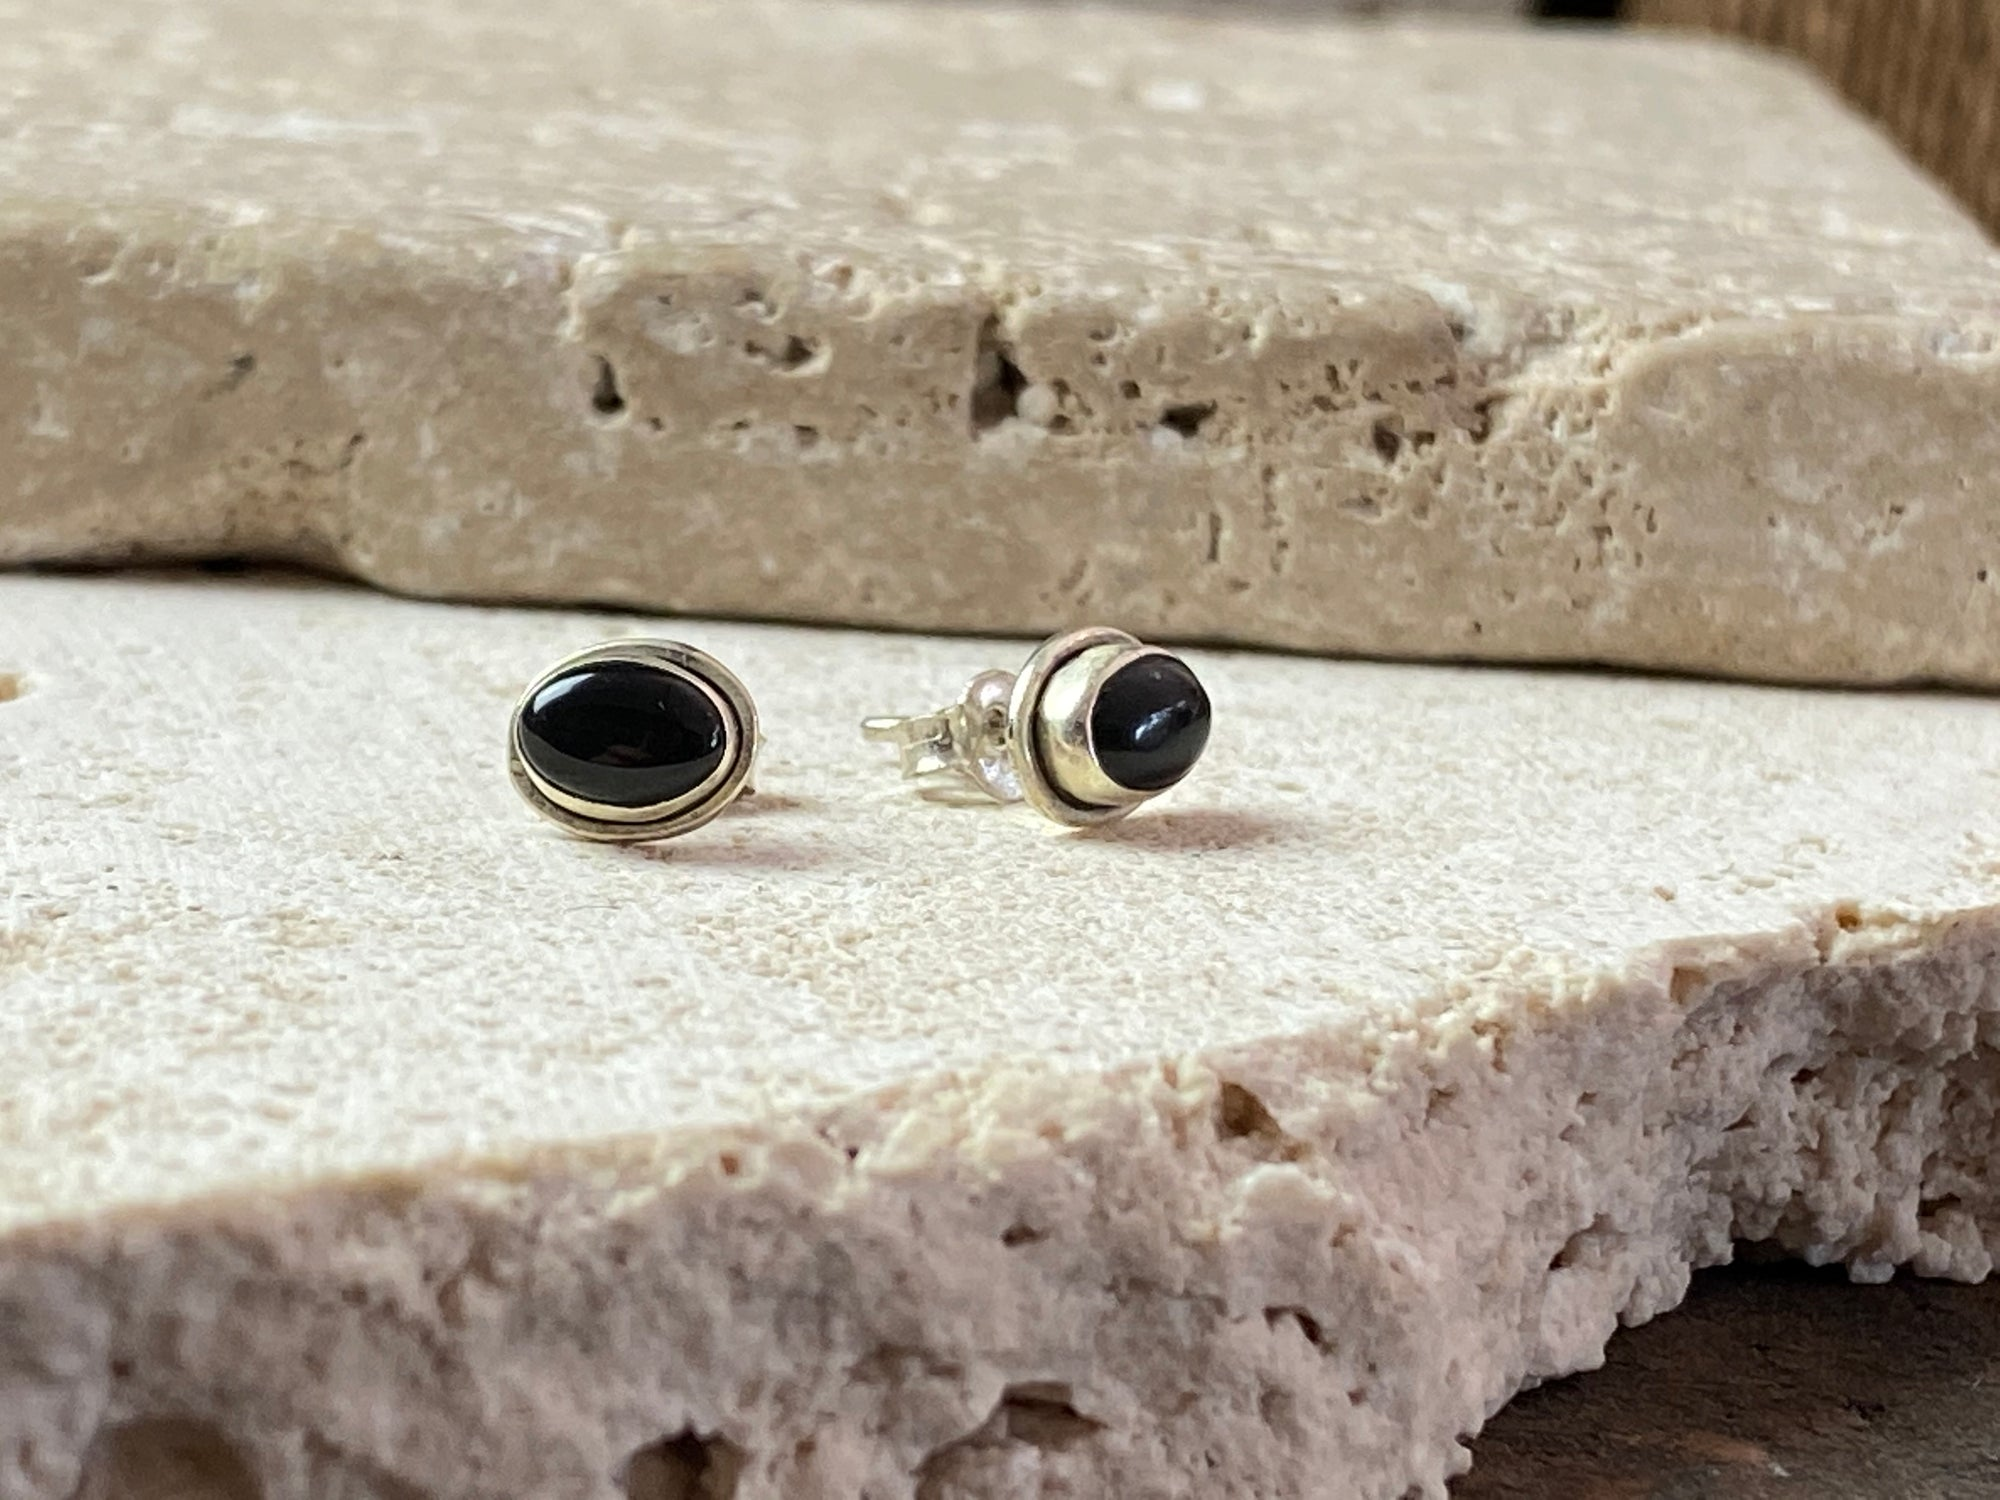 Simple black onyx and sterling silver ear studs with a simple raised bezel setting